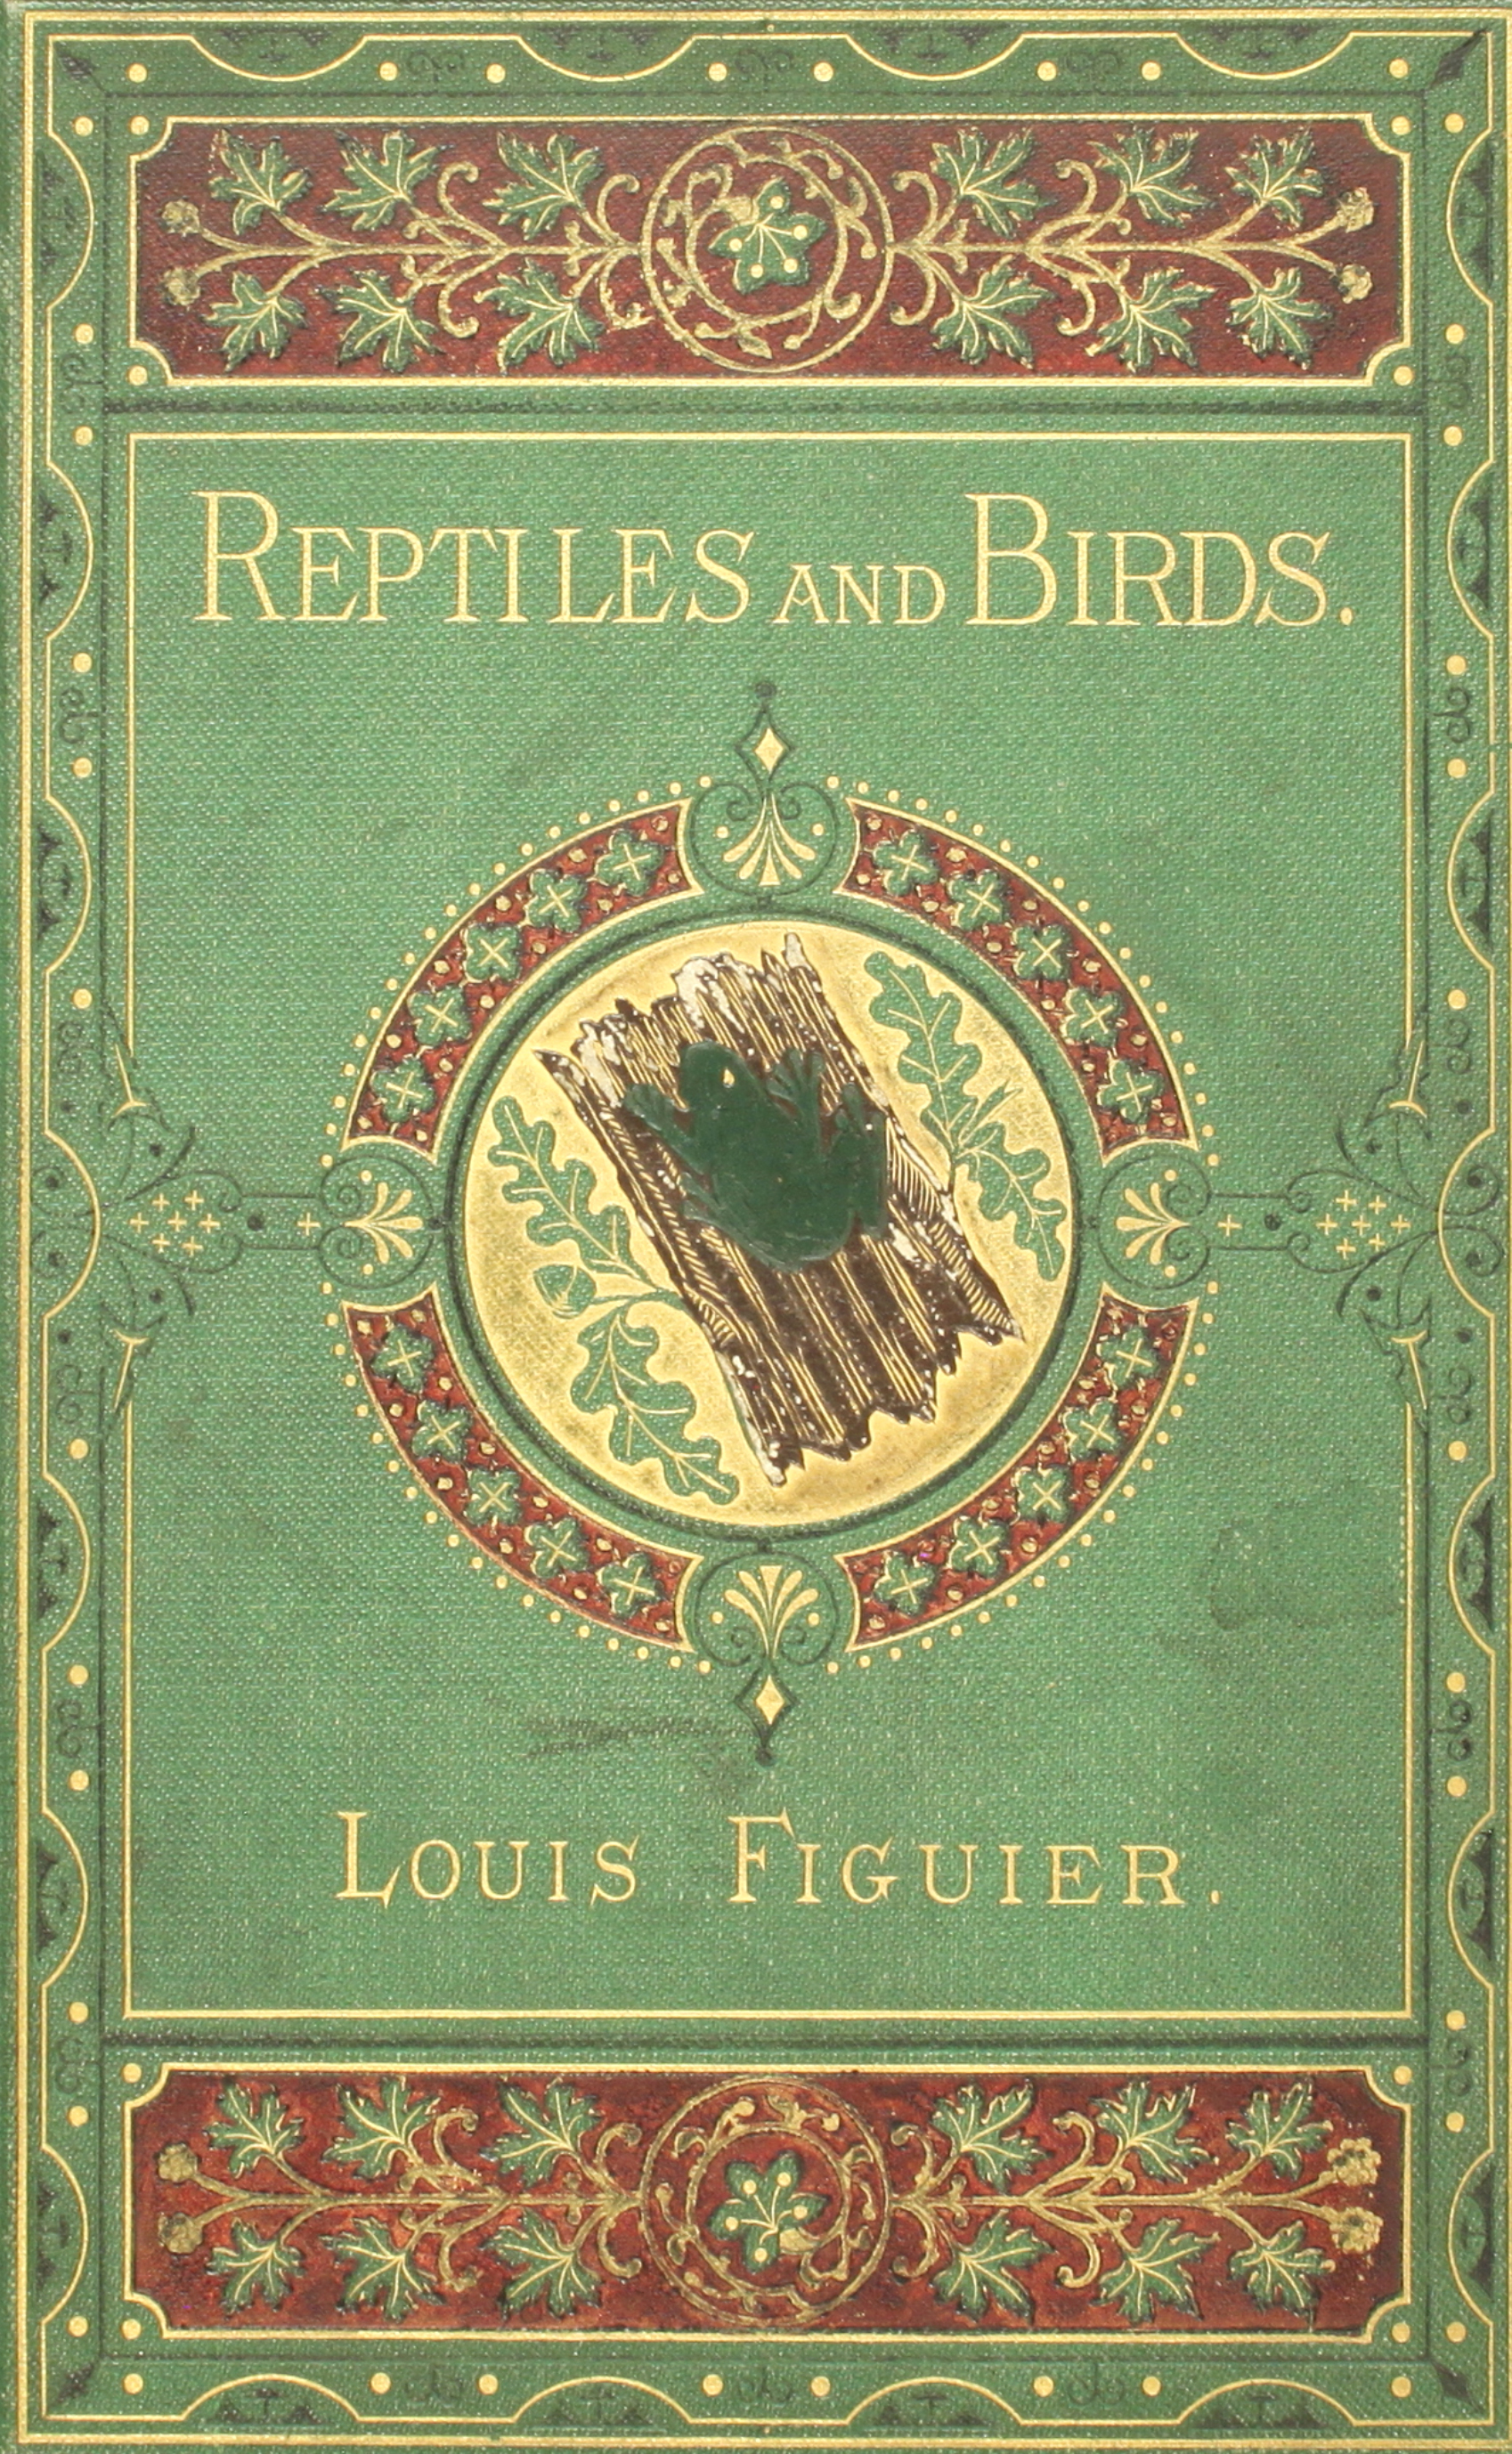 Figuier Louis Reptiles And Birds A Popular Account Of The Andrew Smith Regular 5 Pockets Abu 34 Various Orders With Description Habitats Economy Most Interesting